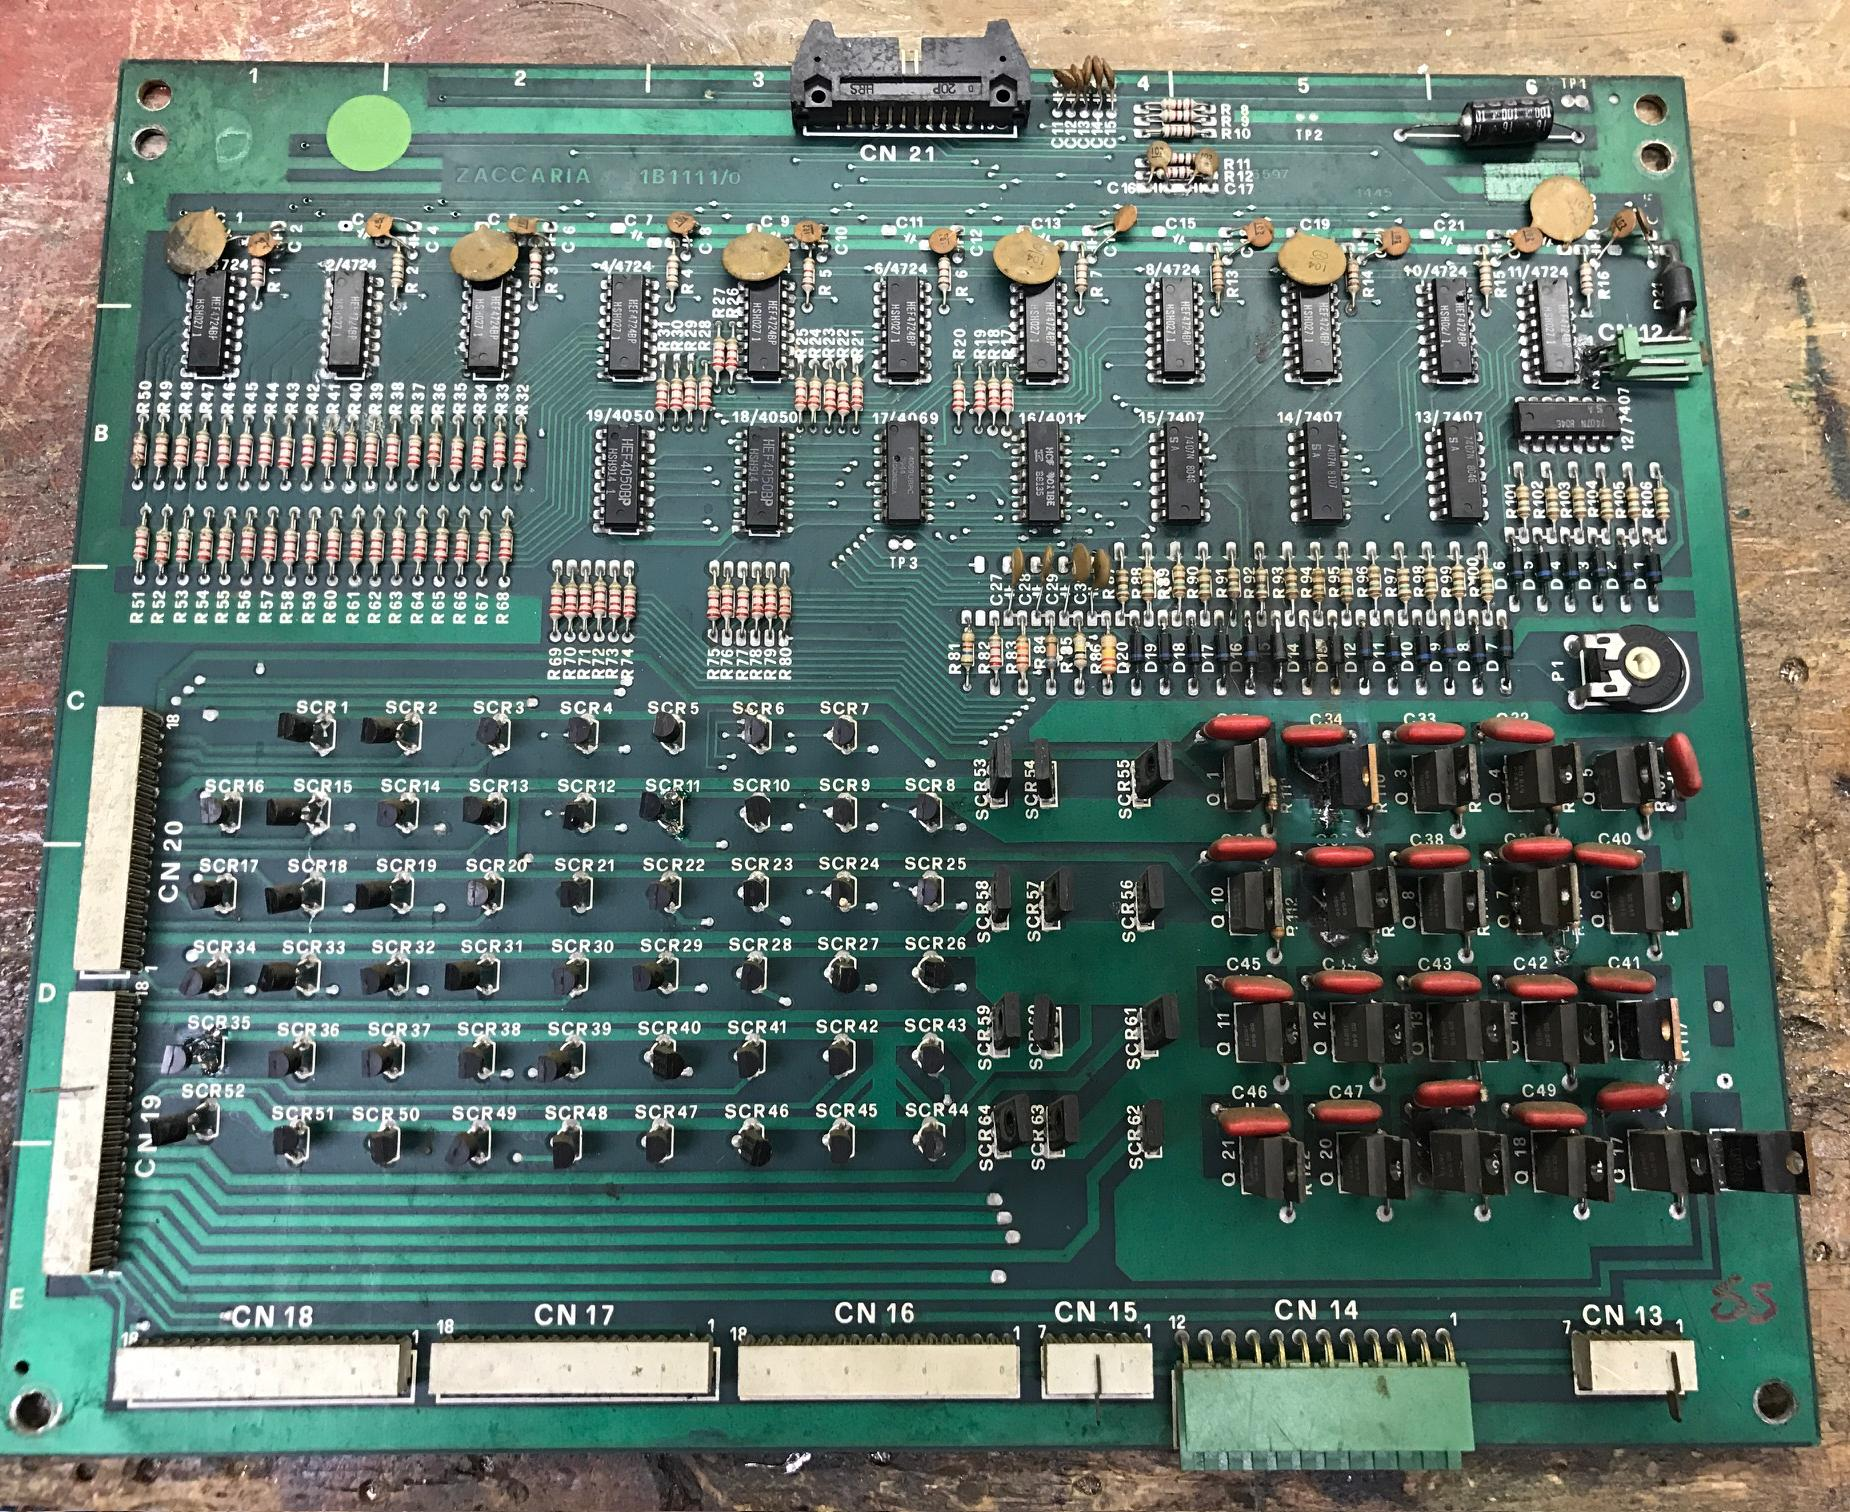 Pinball Repairing Zaccaria Games 1978 1987 Repair And Diagnostic Of Electronic Circuit Board Stock Photo Gen1 Driver Note The 100 Old Style Connectors Green 156 Connector